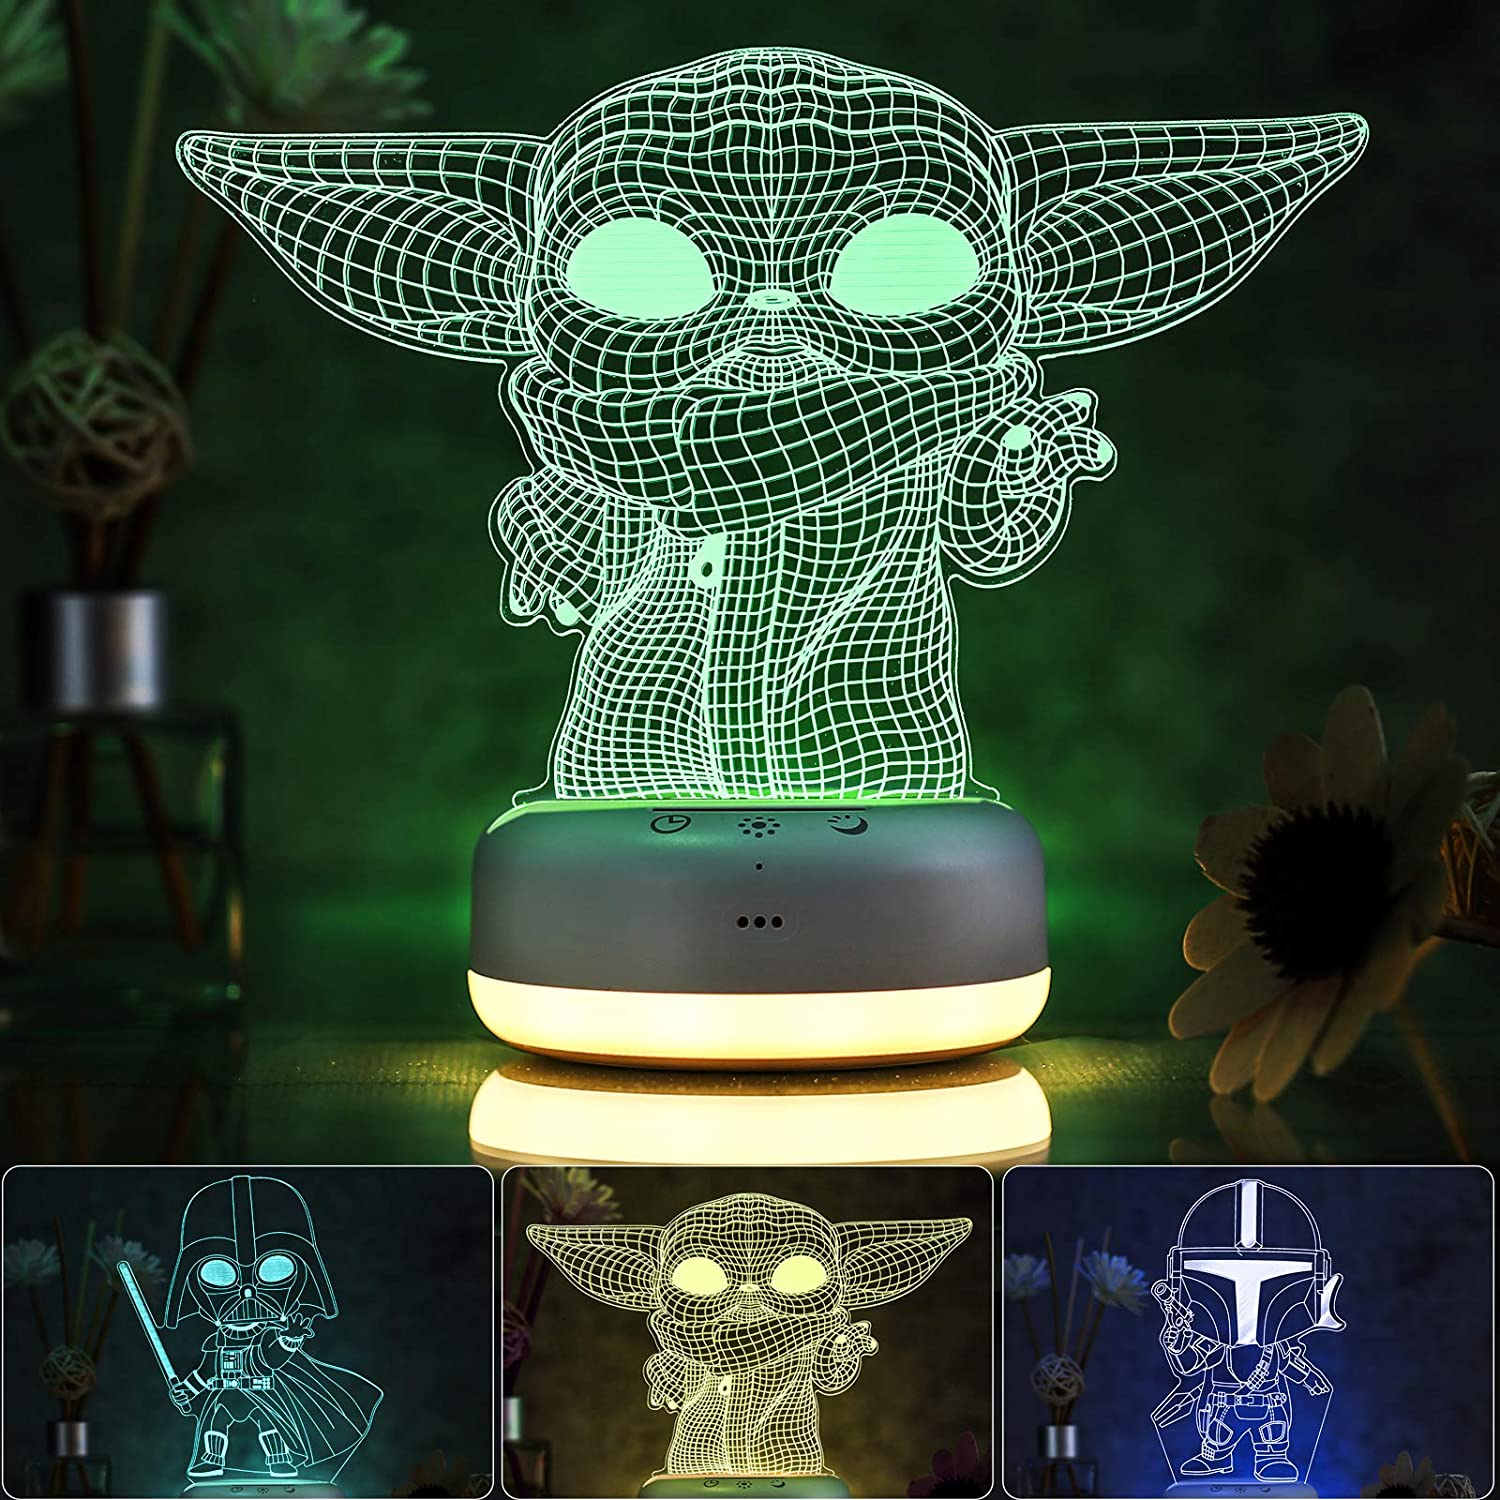 3D Star Wars Night Light for Kids, 3 Patterns and 16 Color Change Night Light, Kids' Room Decor Lamps, Baby Yoda & The Mandalorian Toys, Gifts for Kids and Star Wars Fans